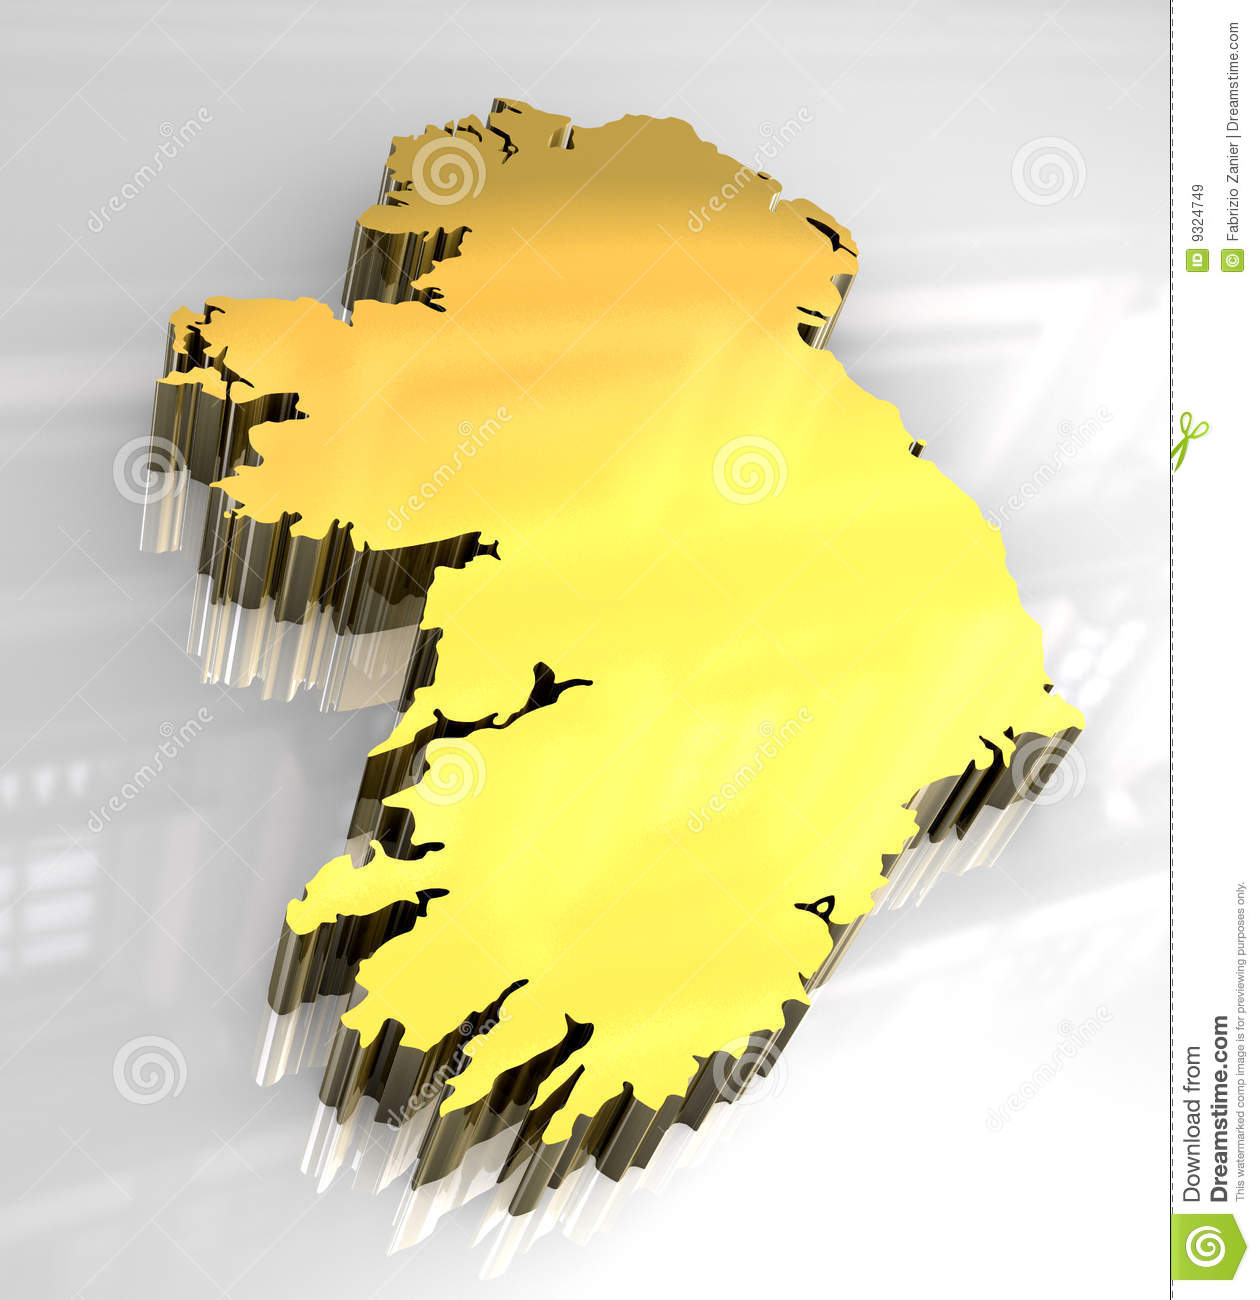 Map Of Ireland 3d.3d Golden Map Of Ireland Stock Illustration Illustration Of Great